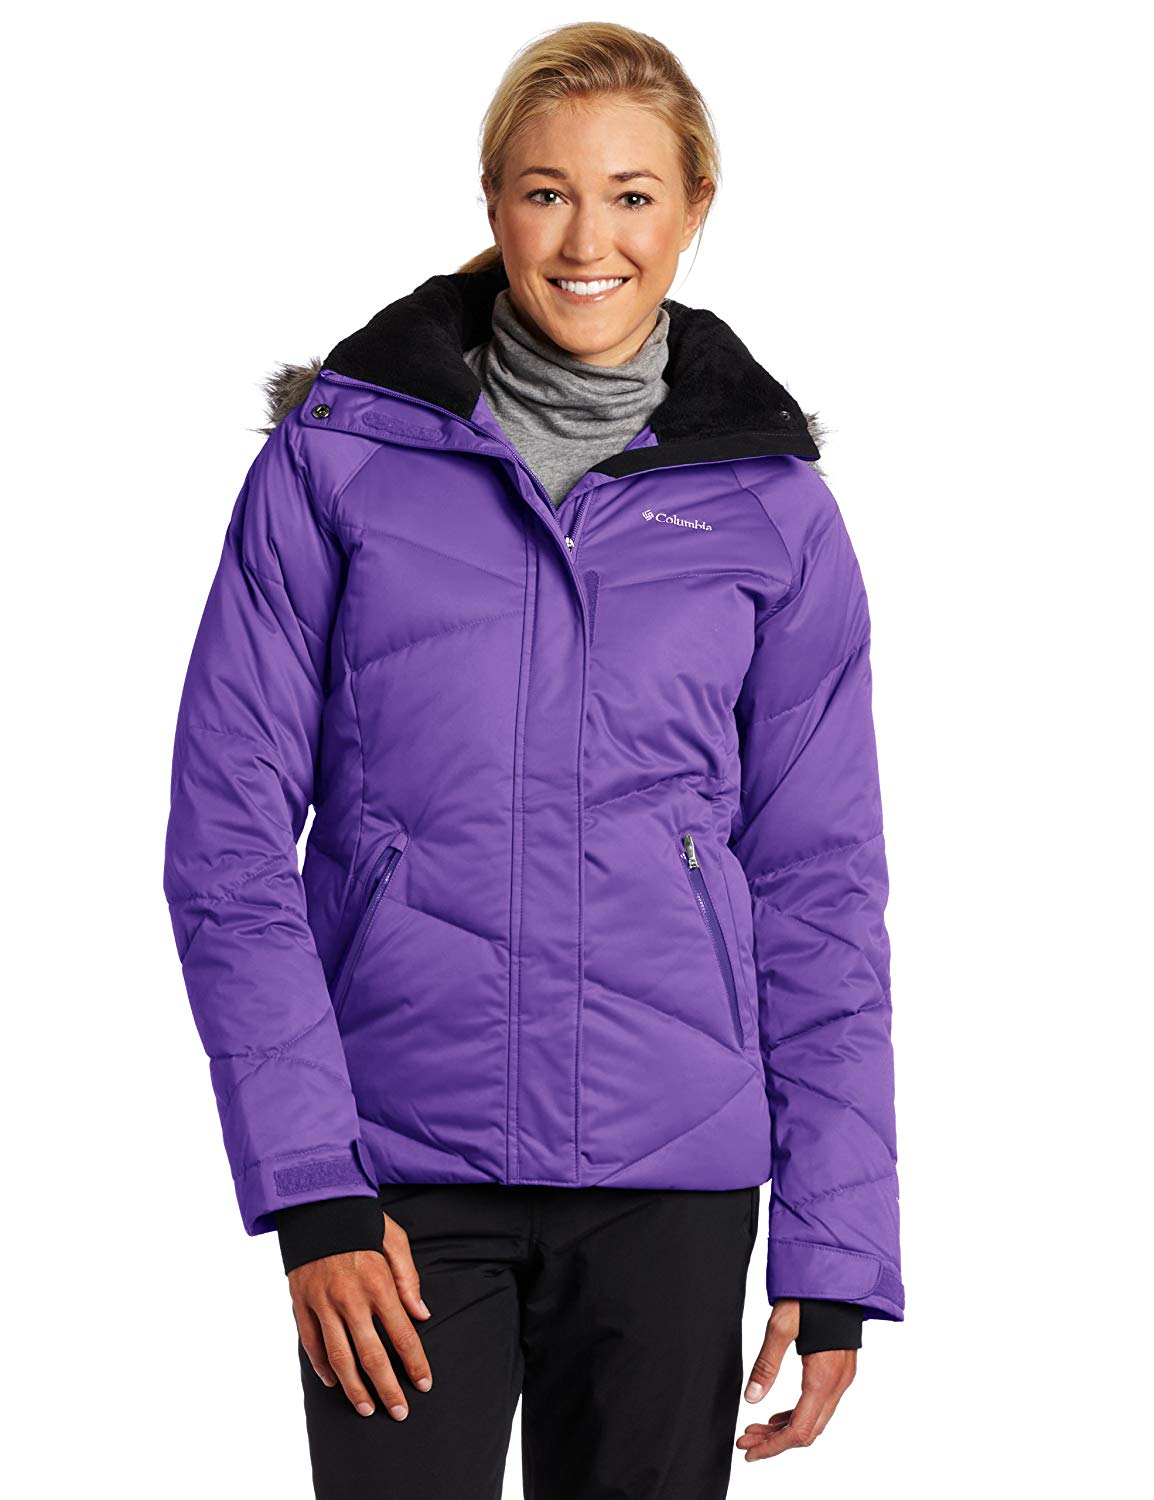 Columbia Women s Lay D Down Jacket Review - trekbible a97ce9775a